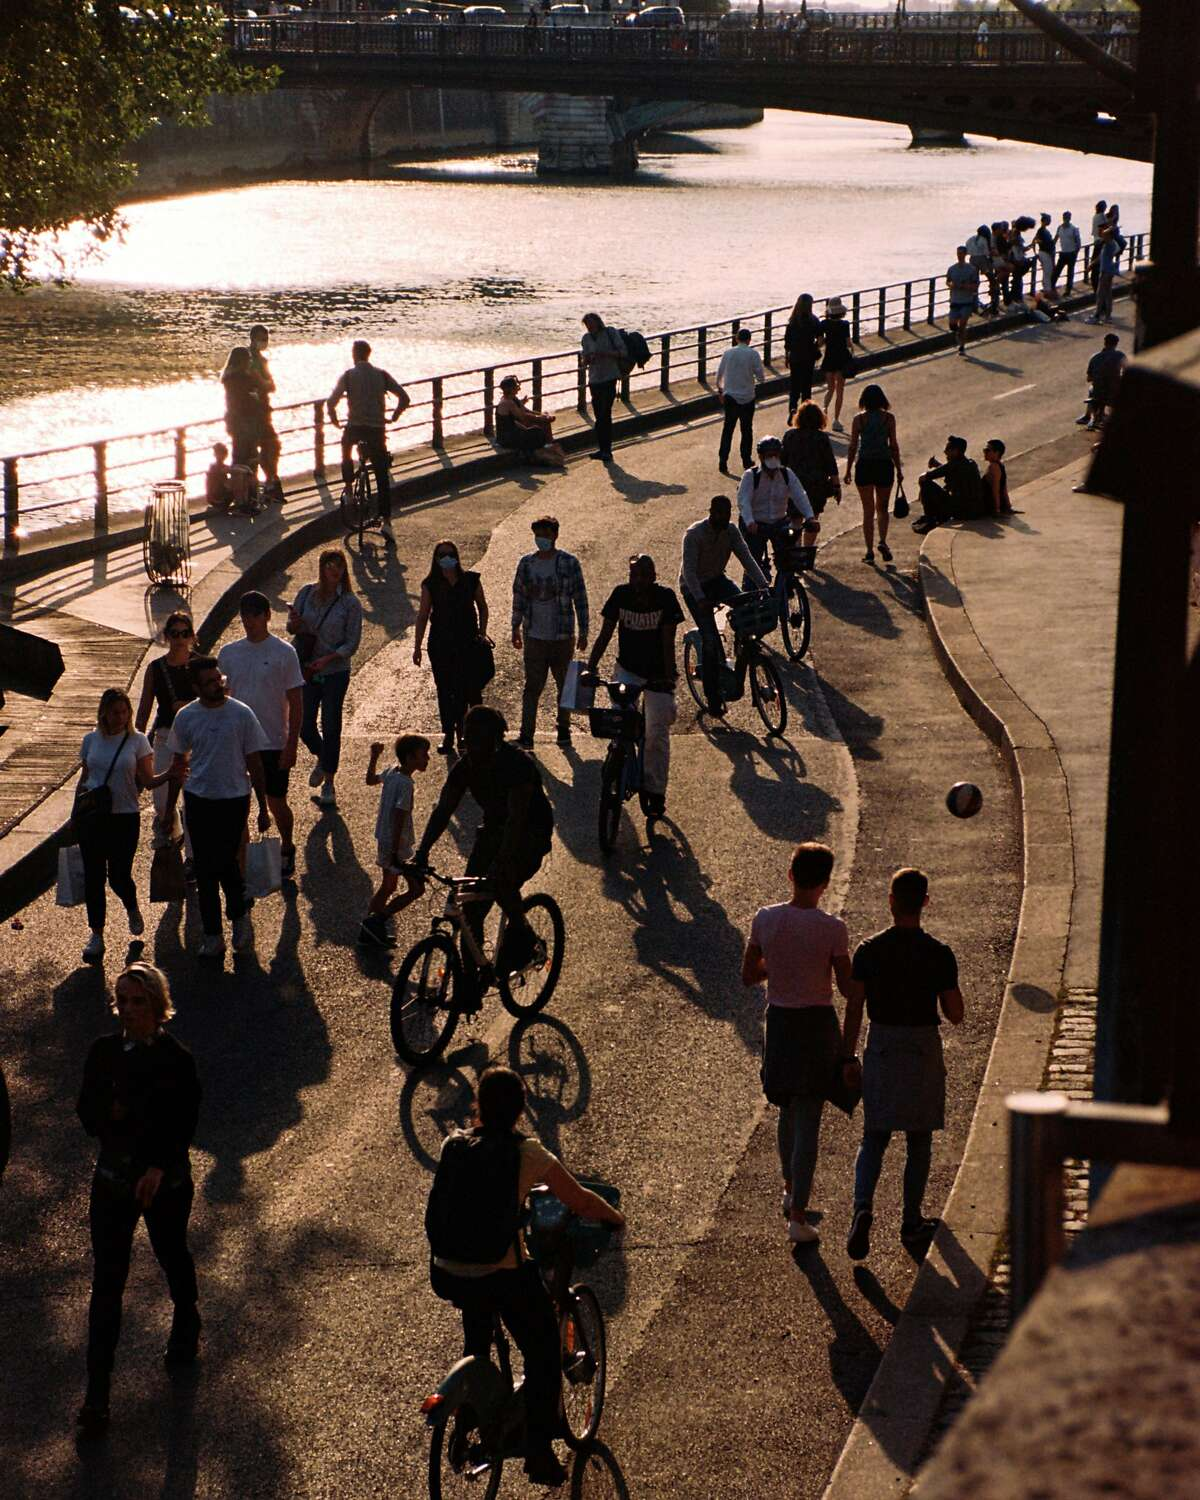 Bicyclists and pedestrians mix on a pathway along the Seine in Paris on May 19, 2020. As European cities emerge from quarantines, bicycles are playing a central role in getting the work force moving again. (Maxime La/The New York Times)